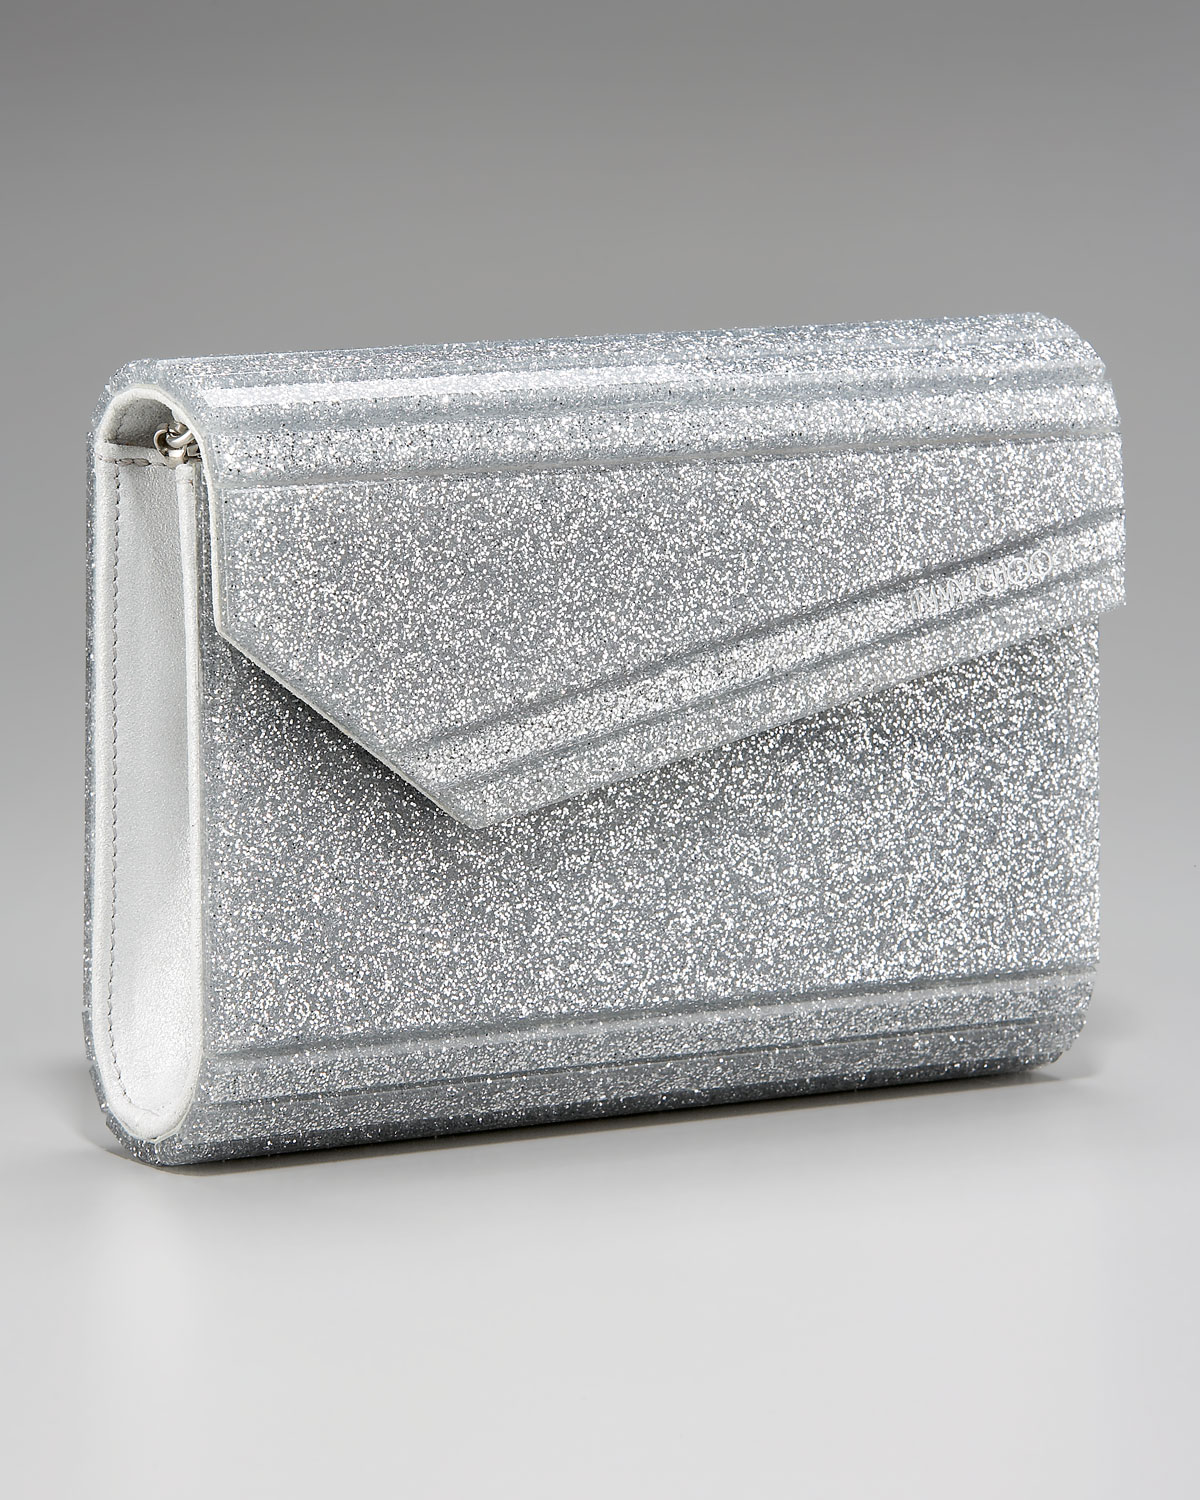 aliexpress good selling cheapest price Jimmy Choo Metallic Candy Glitter Clutch